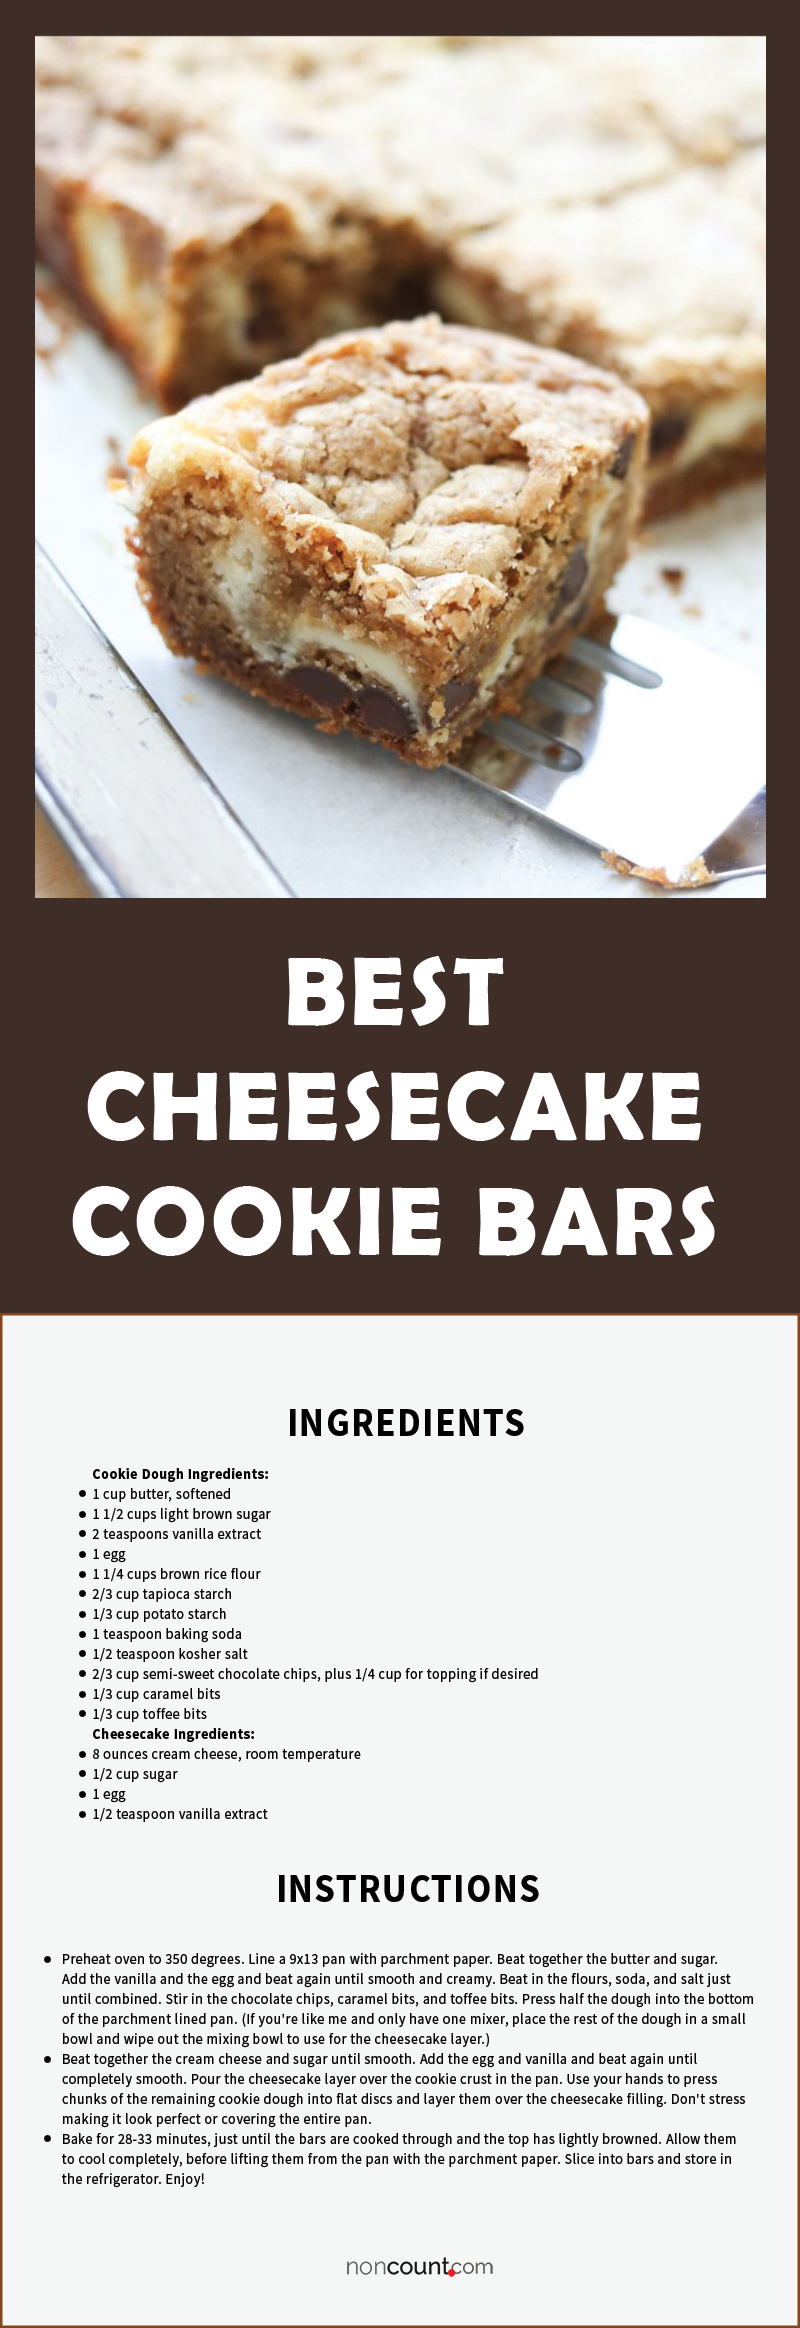 The Best Cheesecake Cookie Bars {traditional and gluten free recipes} details image